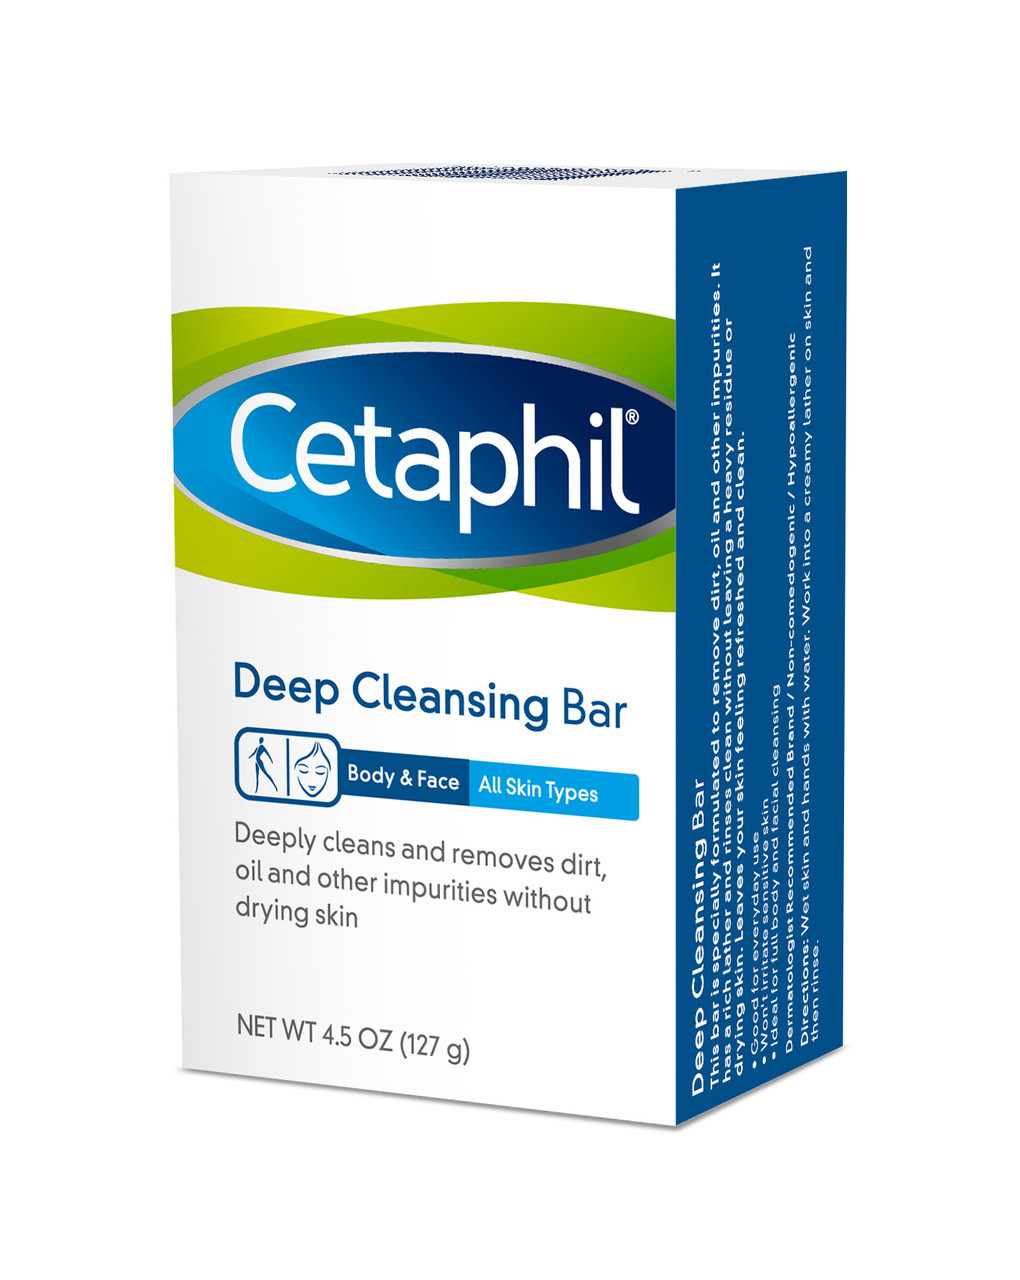 Cetaphil Deep Cleansing Bar, Body And Face, All Skin Types, 4.5 Oz , 3 Pack 6 Pack - Lancaster Absolute Precious Pure Cleansing Creamy Foam for Women 5.0 oz